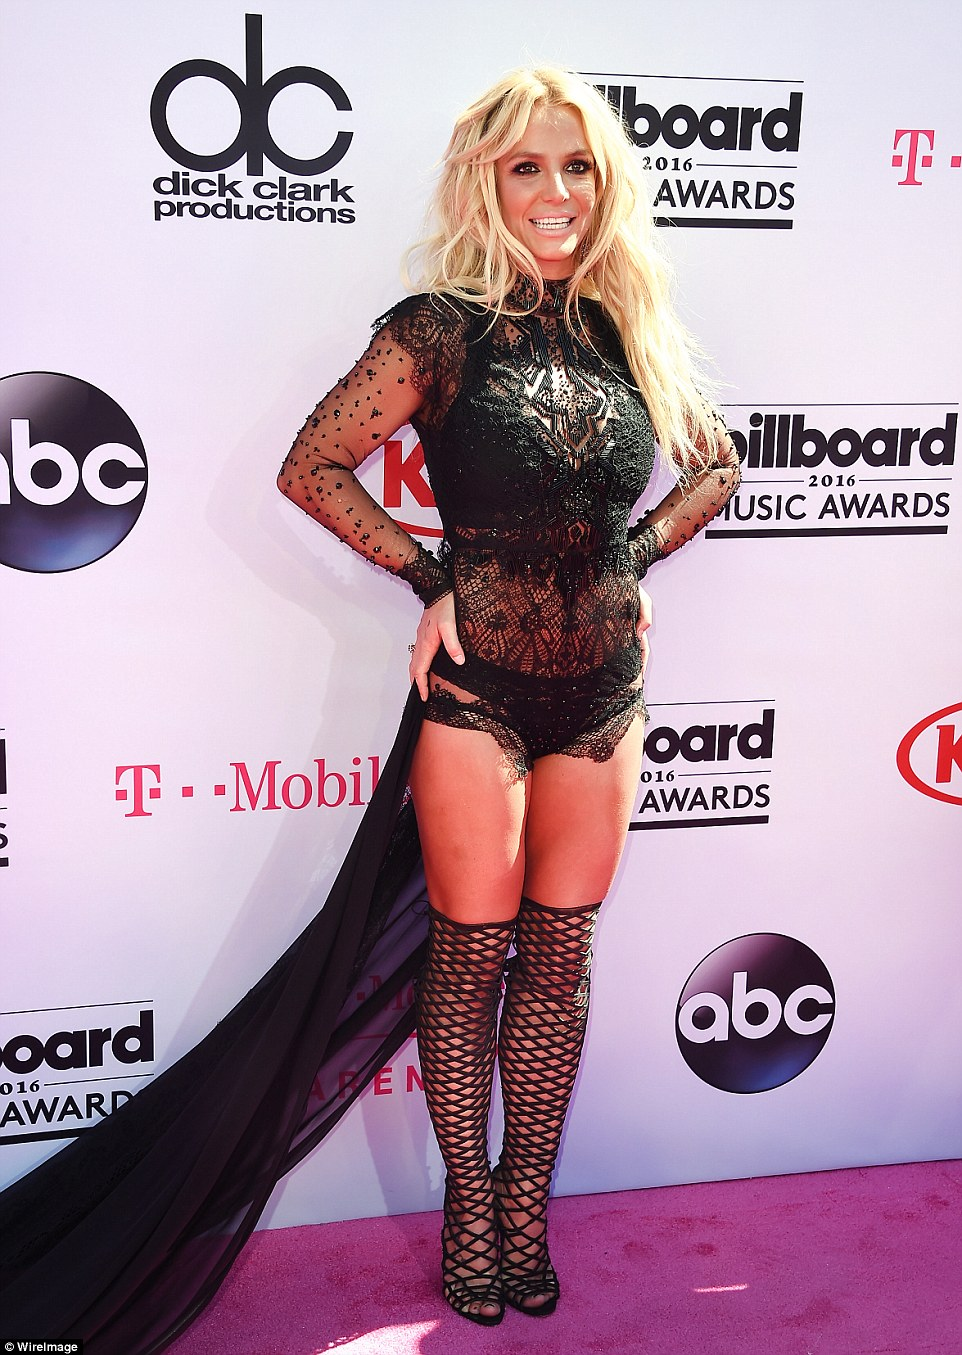 3481EA6B00000578-3604063-Demanded_attention_On_the_red_carpet_Britney_was_very_close_to_n-a-53_1463989034198